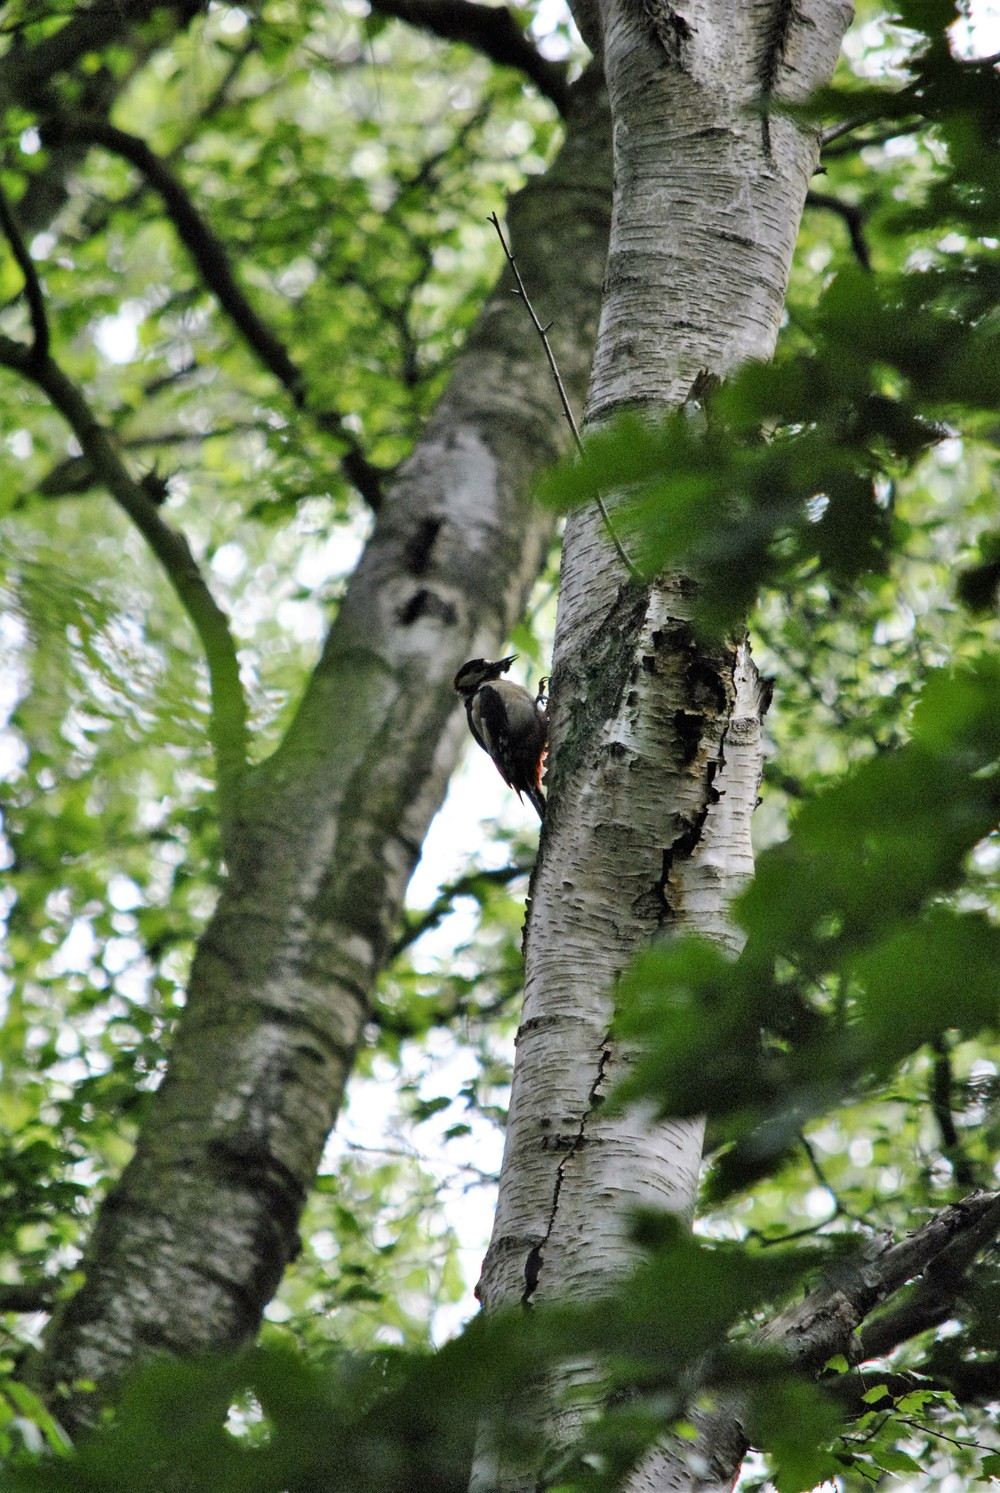 A woodpecker on the dog walk in the woods behind the Ginger&Browns pet shop in Northwich, near Chester, Winsford and Frodsham in Cheshire.